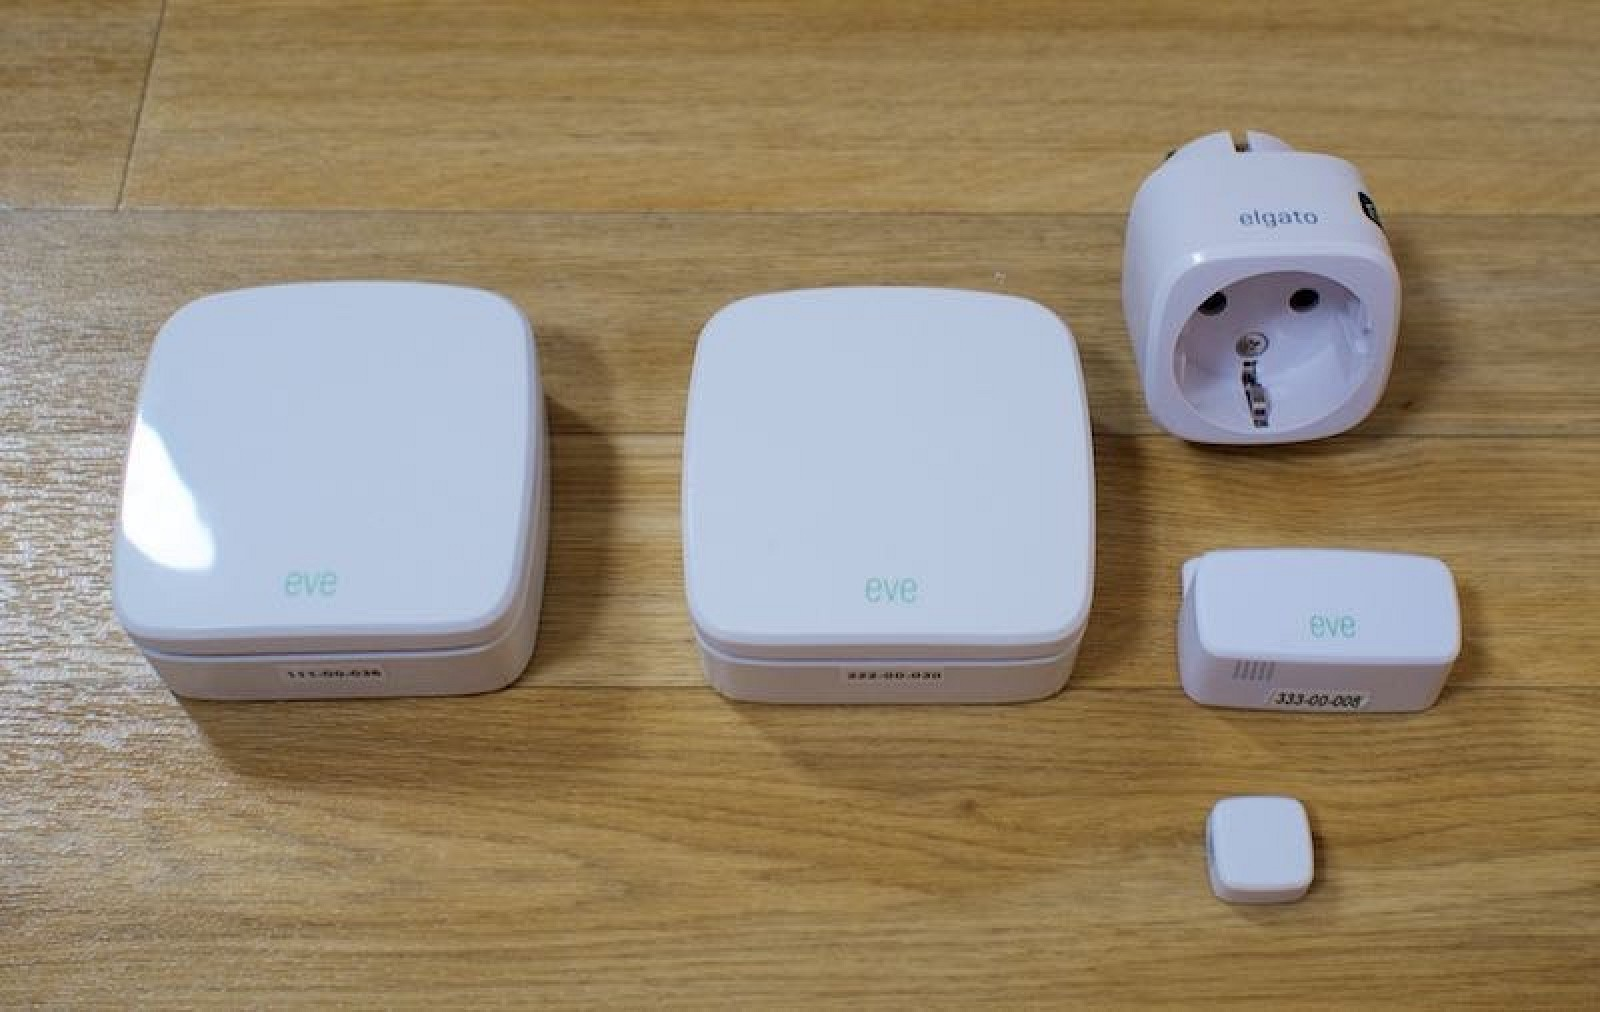 Elgatos Eve Smart Home Accessories Are Useful But Hampered By Outdoor Electric Outlets Group Picture Image Tag Buggy Homekit Platform Macrumors